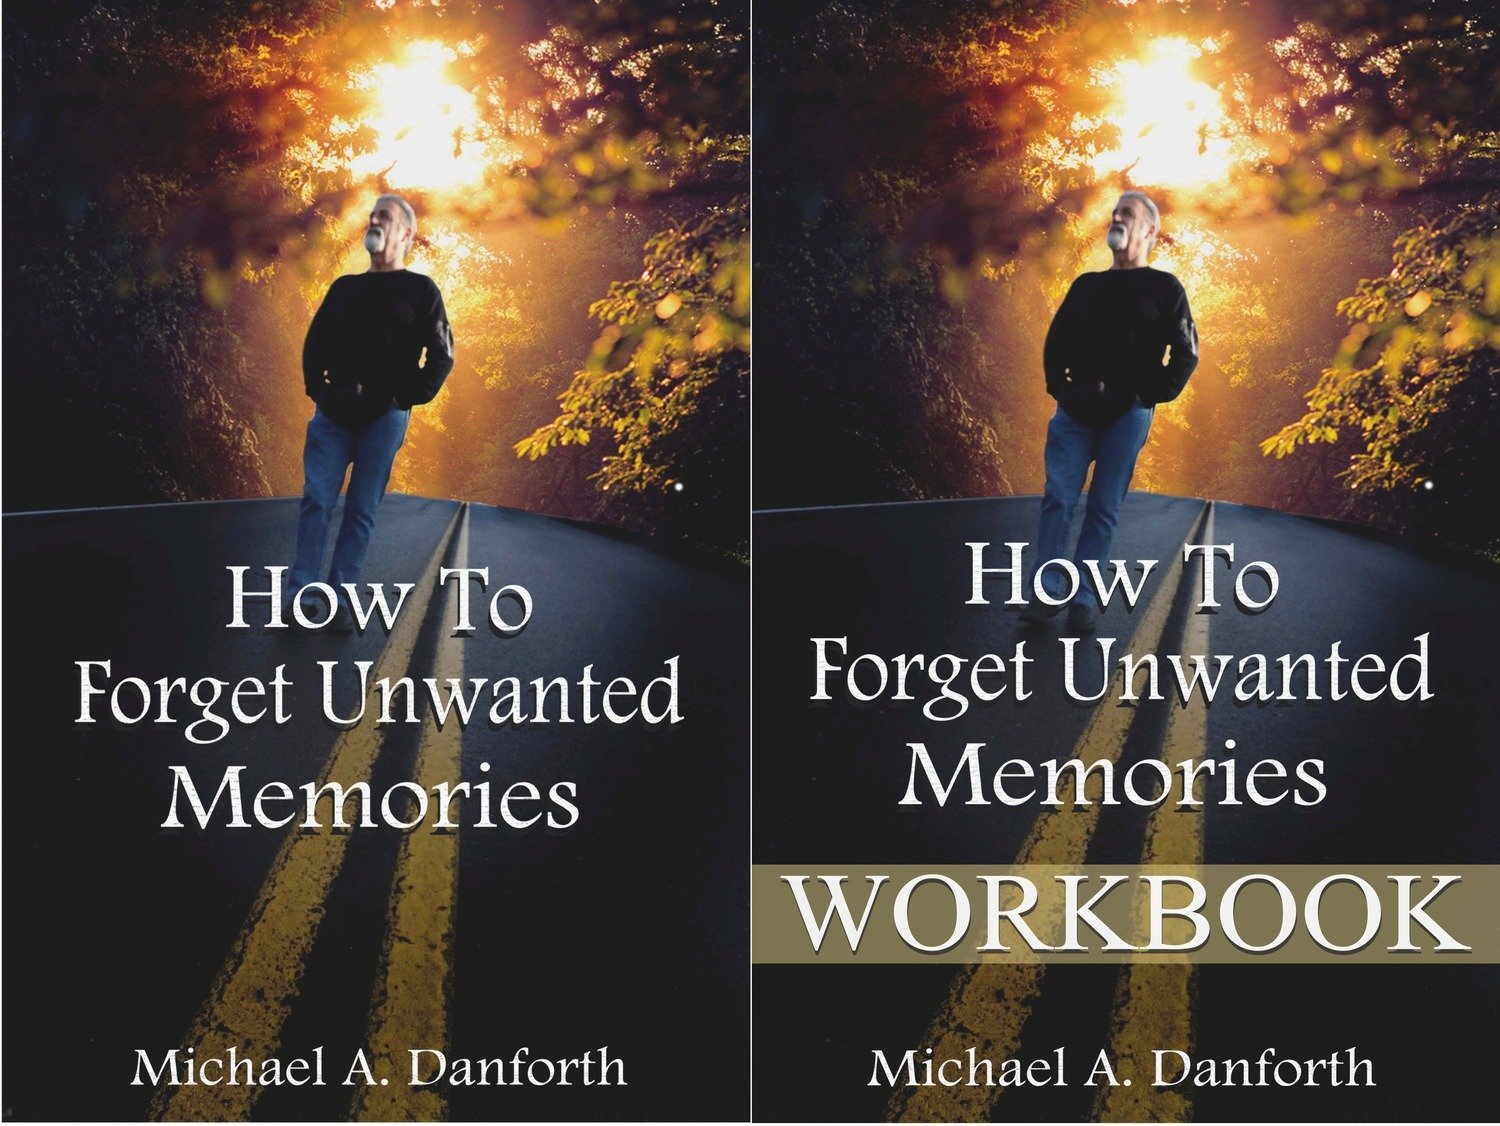 How To Forget Unwanted Memories Book & WorkBook